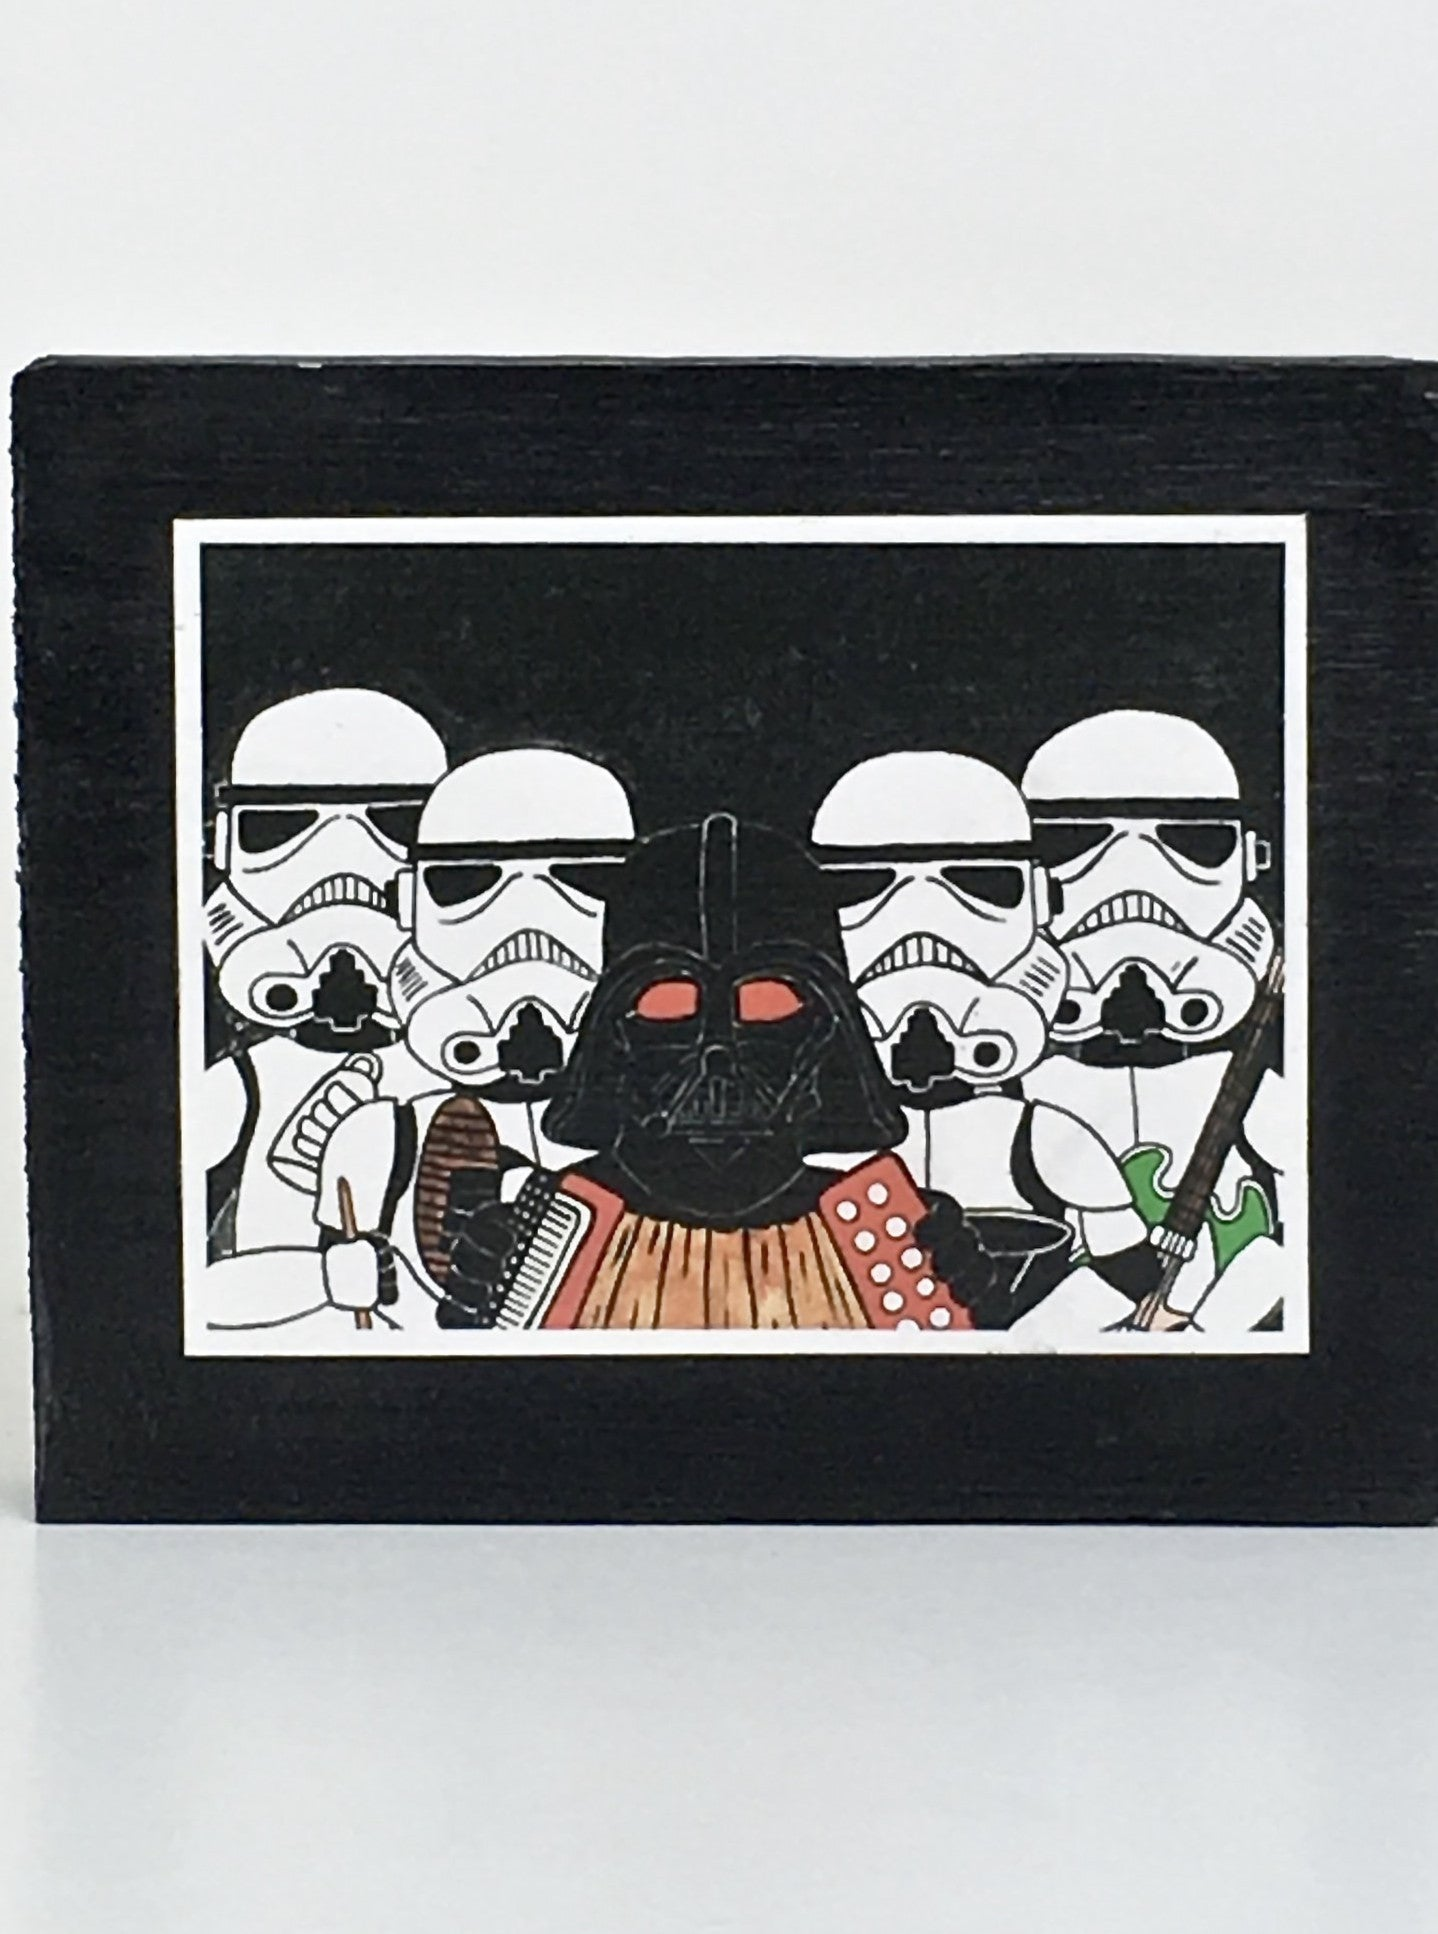 Star Wars inspired collectible art tile by Ninoska Arte